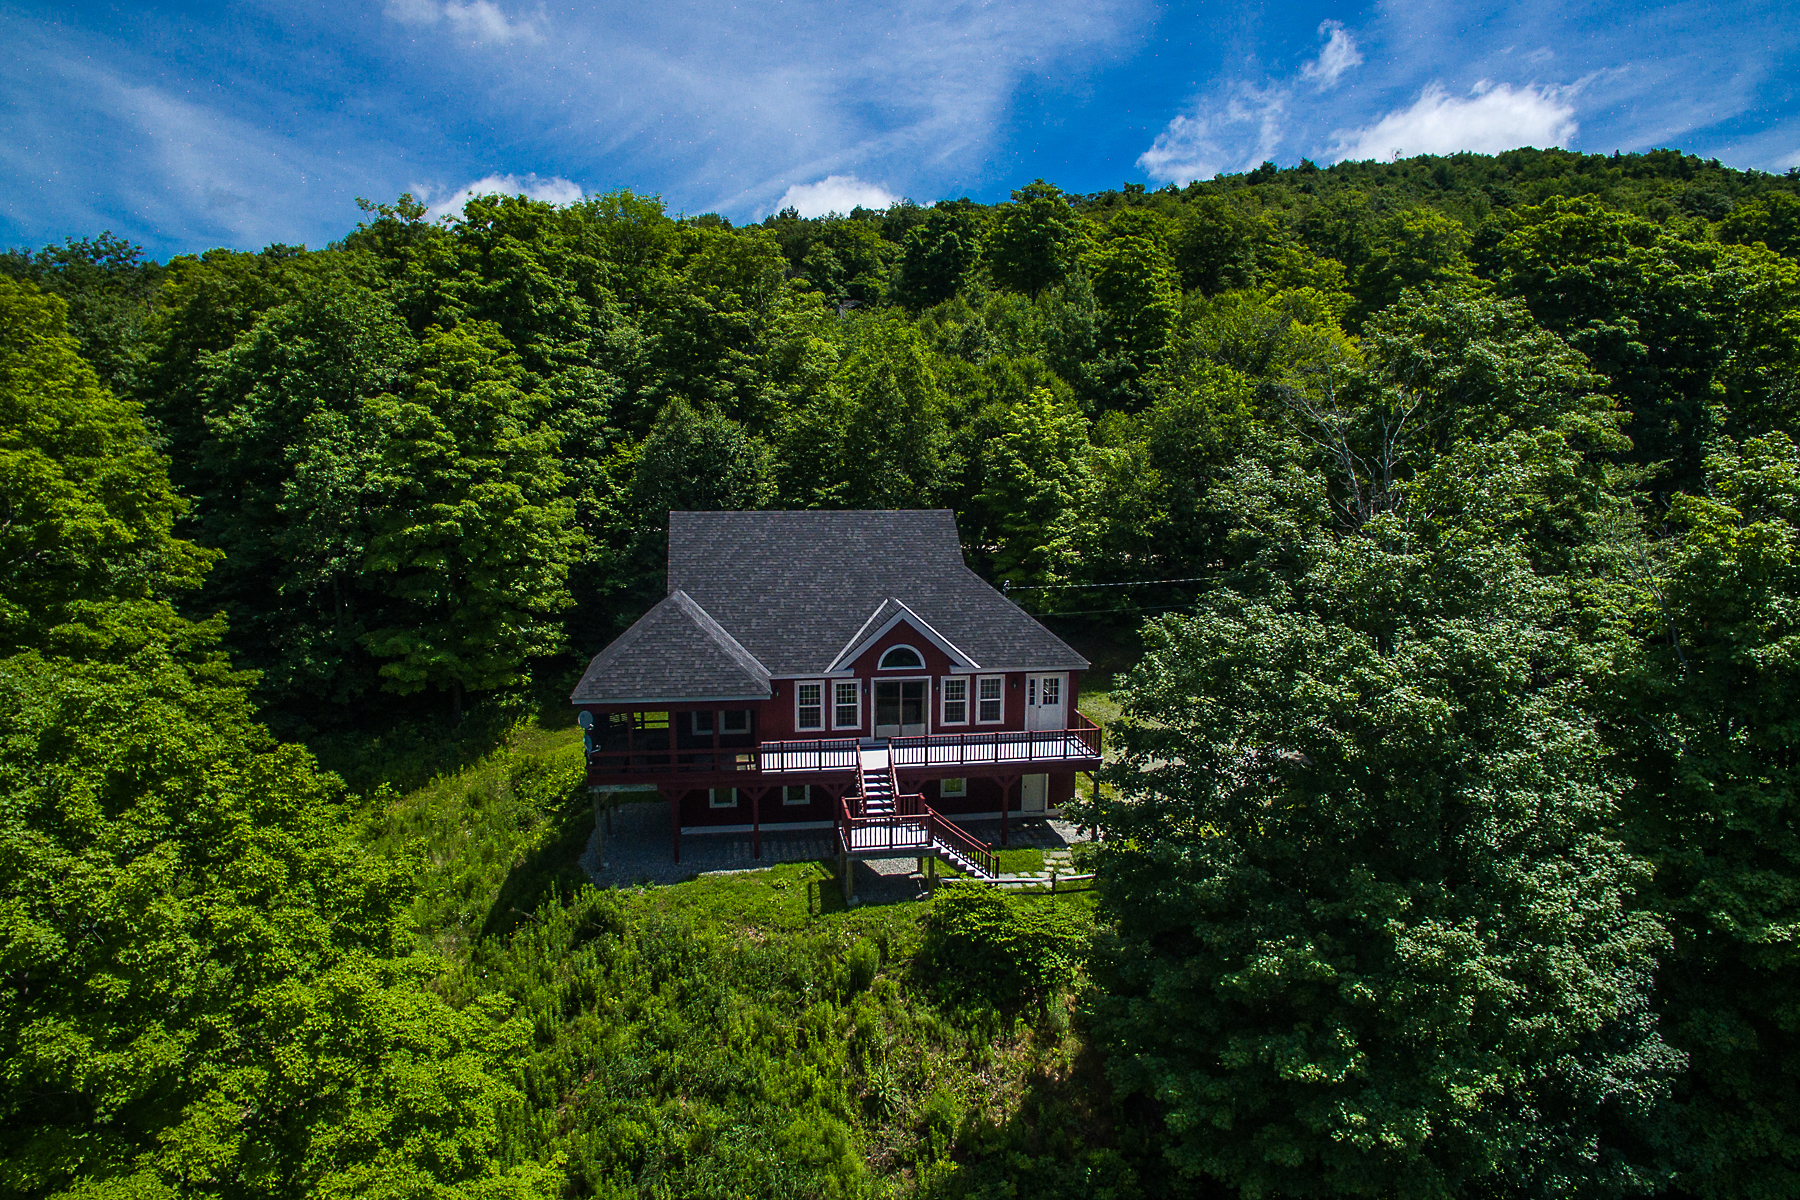 Casa Unifamiliar por un Venta en Fabulous West River Valley Views 745 Andover Ridge Rd Andover, Vermont, 05143 Estados Unidos